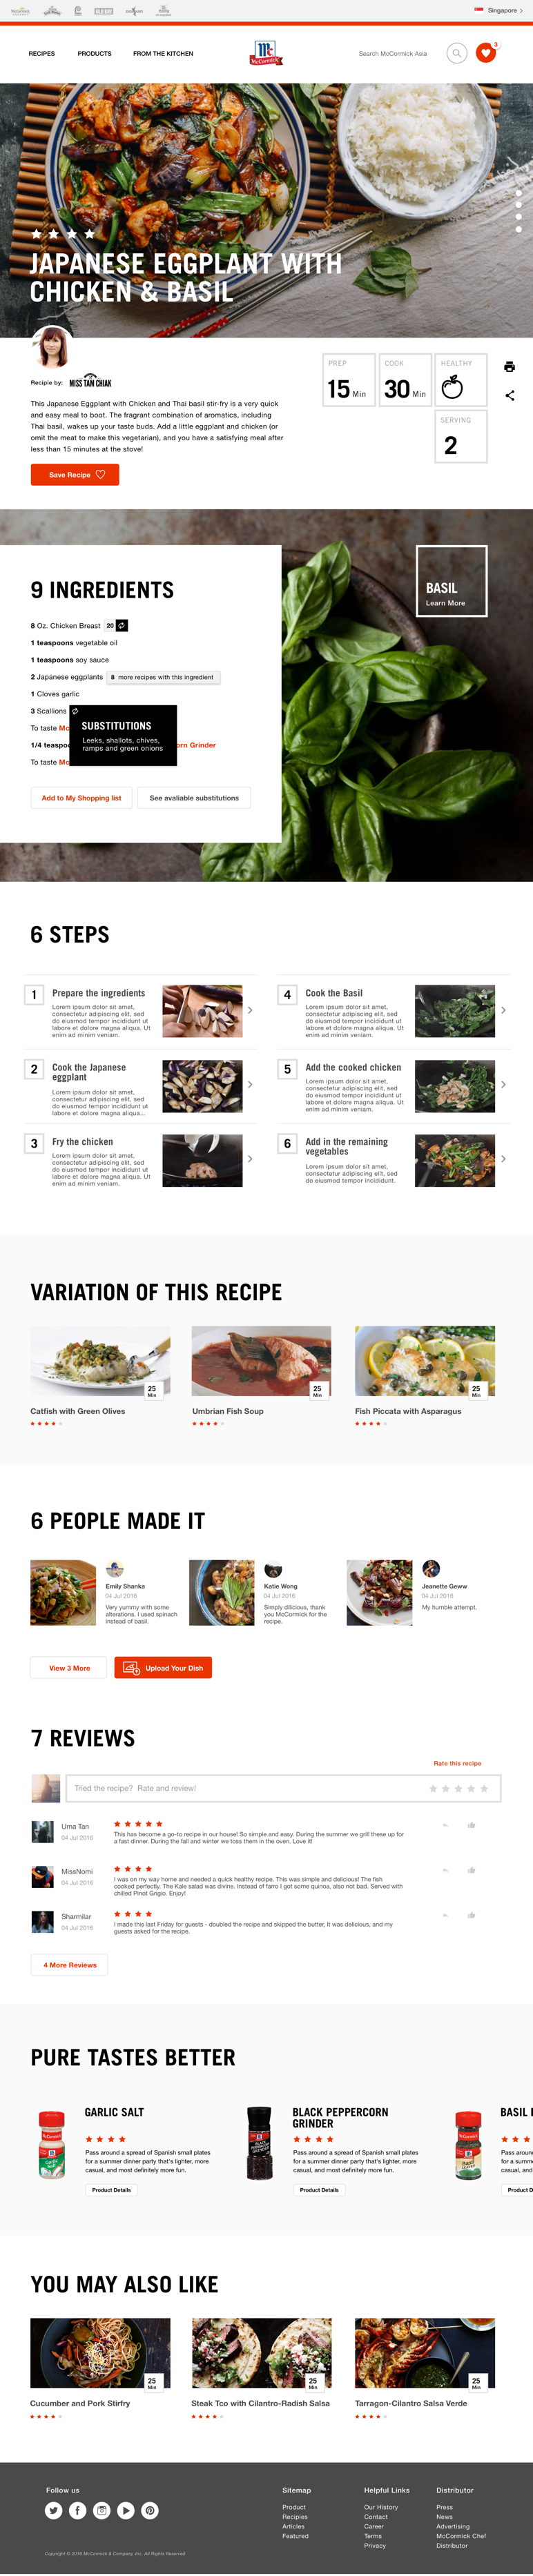 screen of recipe details in collaboration with local influencer